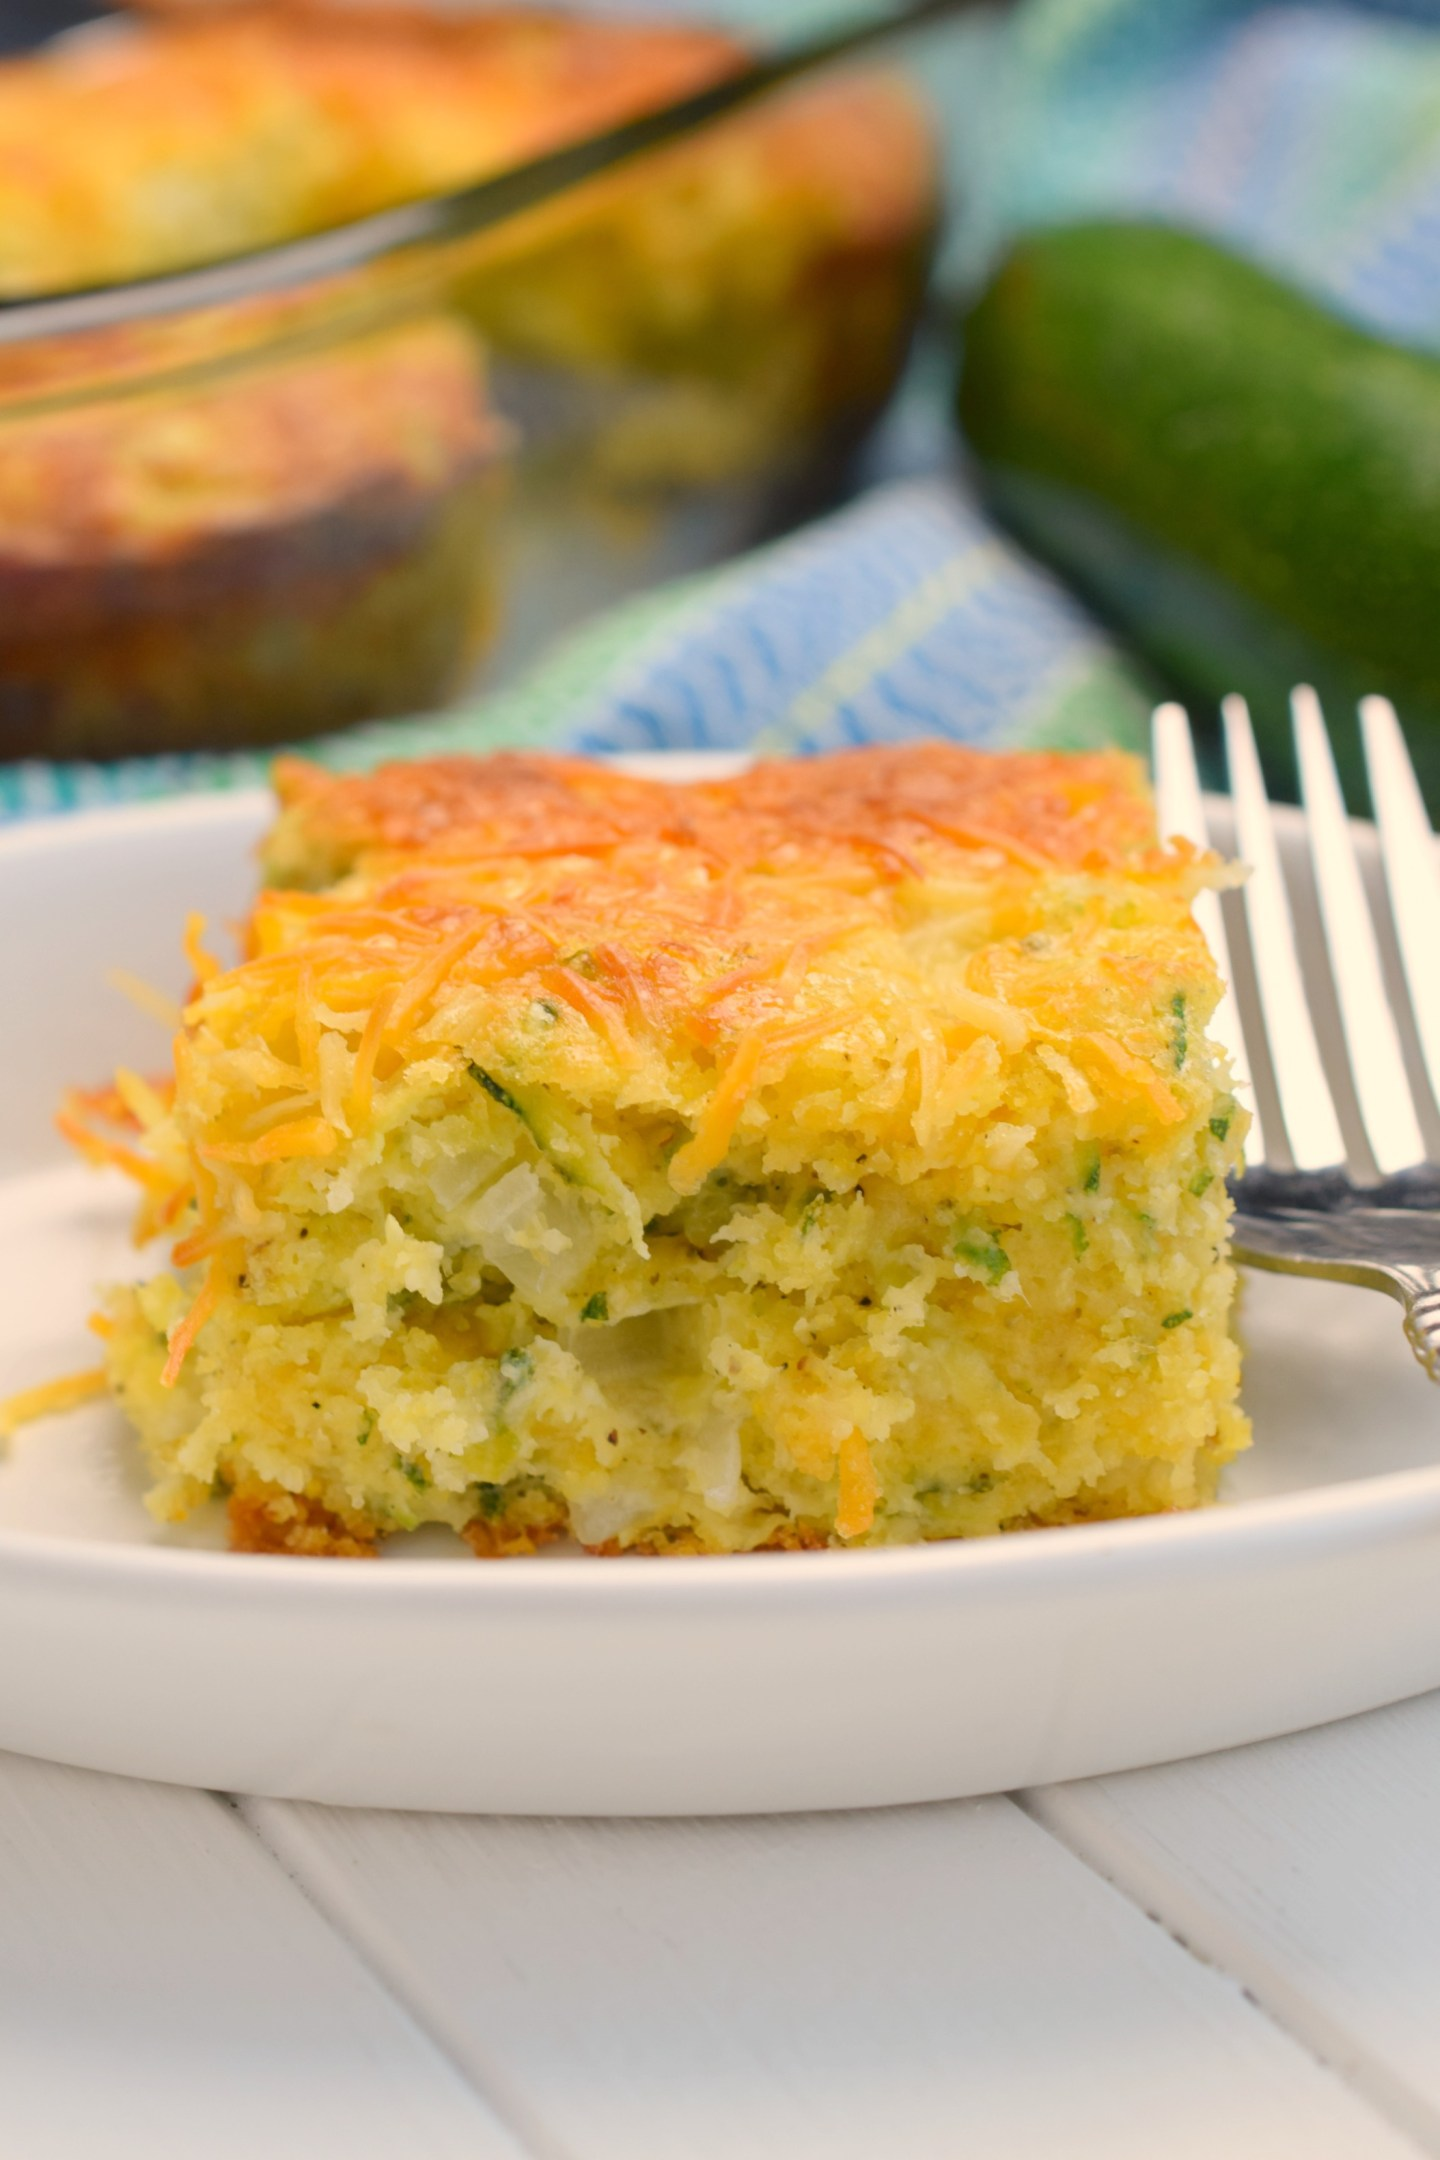 Cheesy Zucchini Cornbread Casserole by Who Needs A Cape? - WEEKEND POTLUCK 443